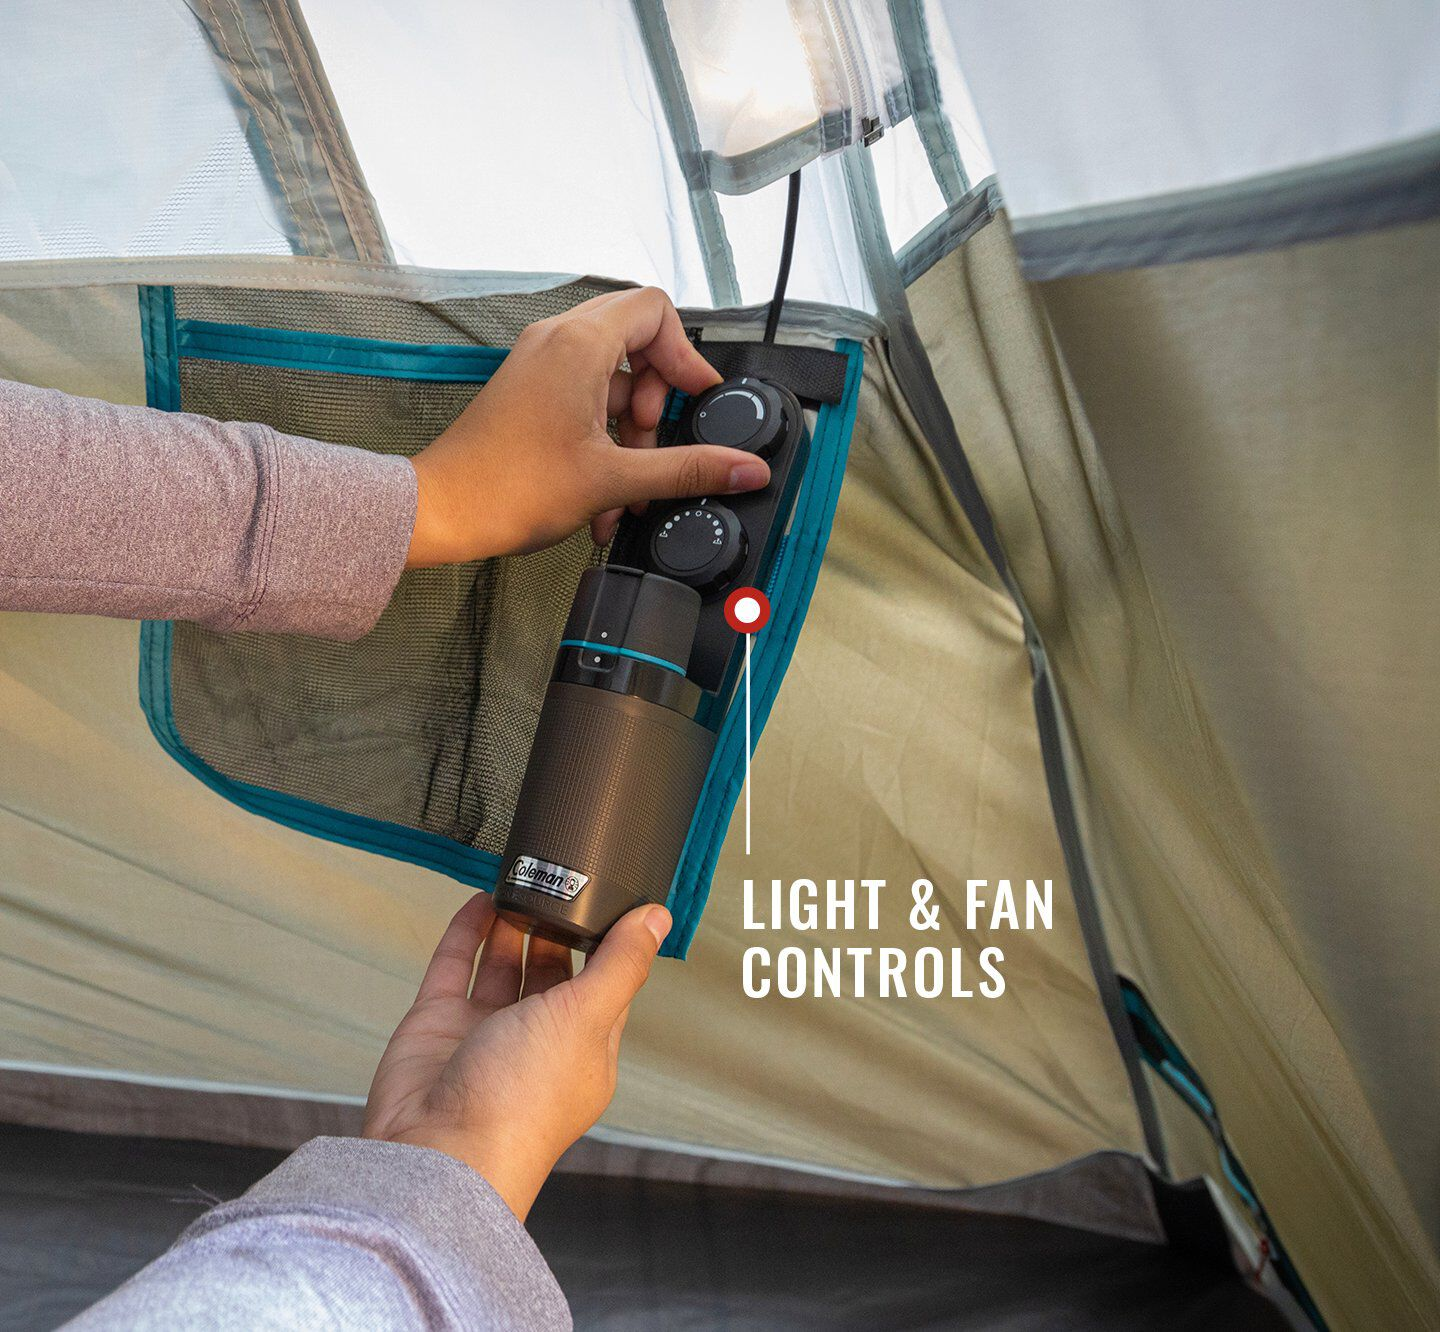 battery powered tent light and fan controls